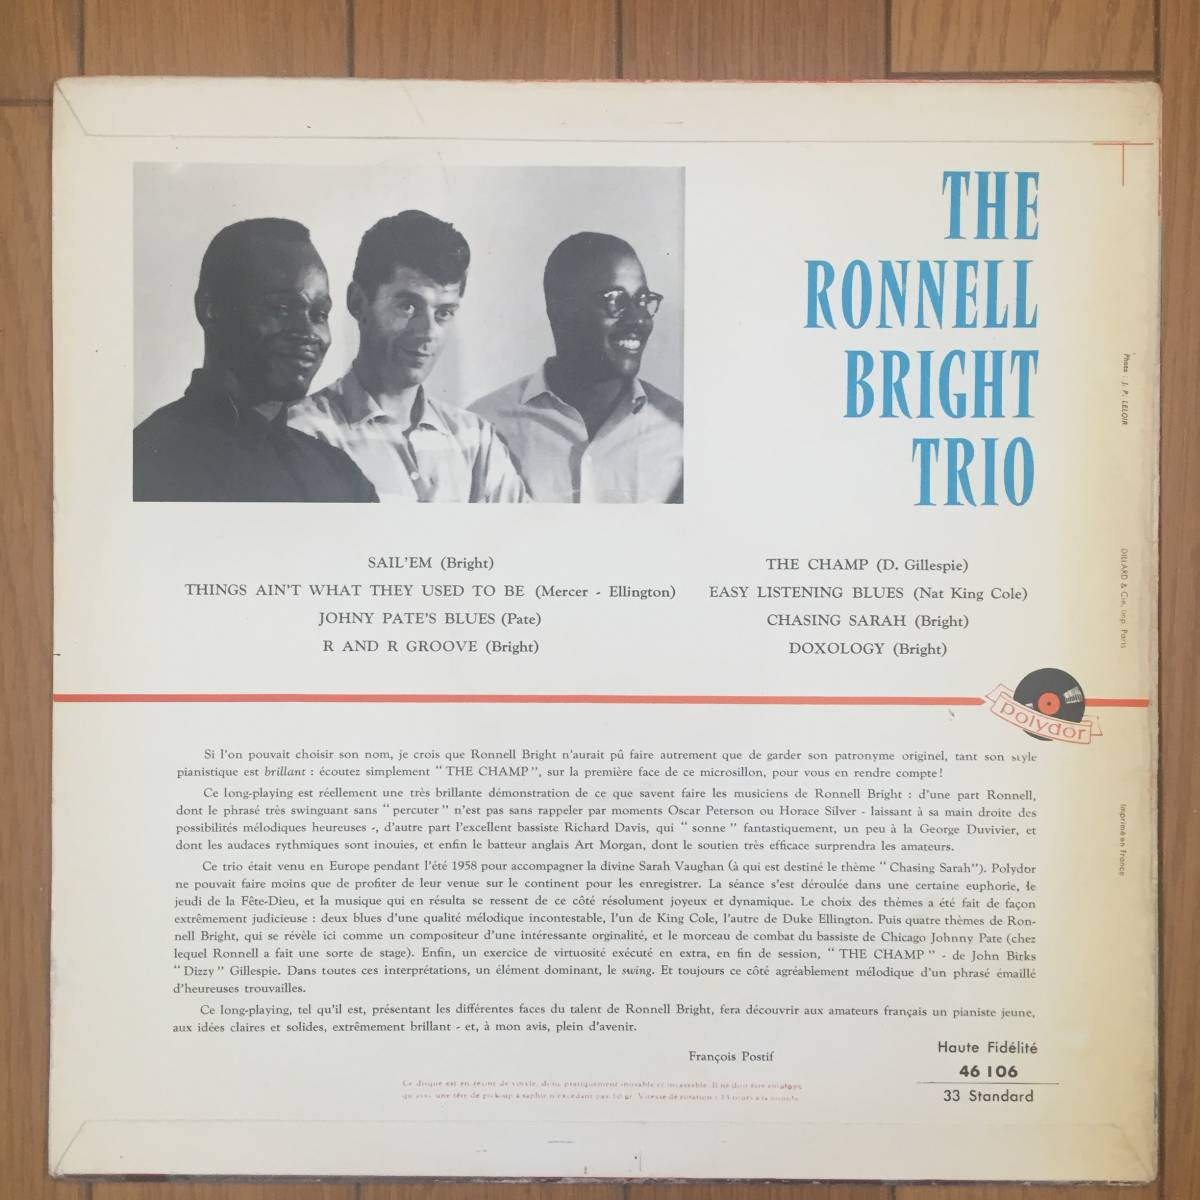 【激レア/France Polydor Original】The Ronnell Bright Trio(Polydor 46 106)_画像2